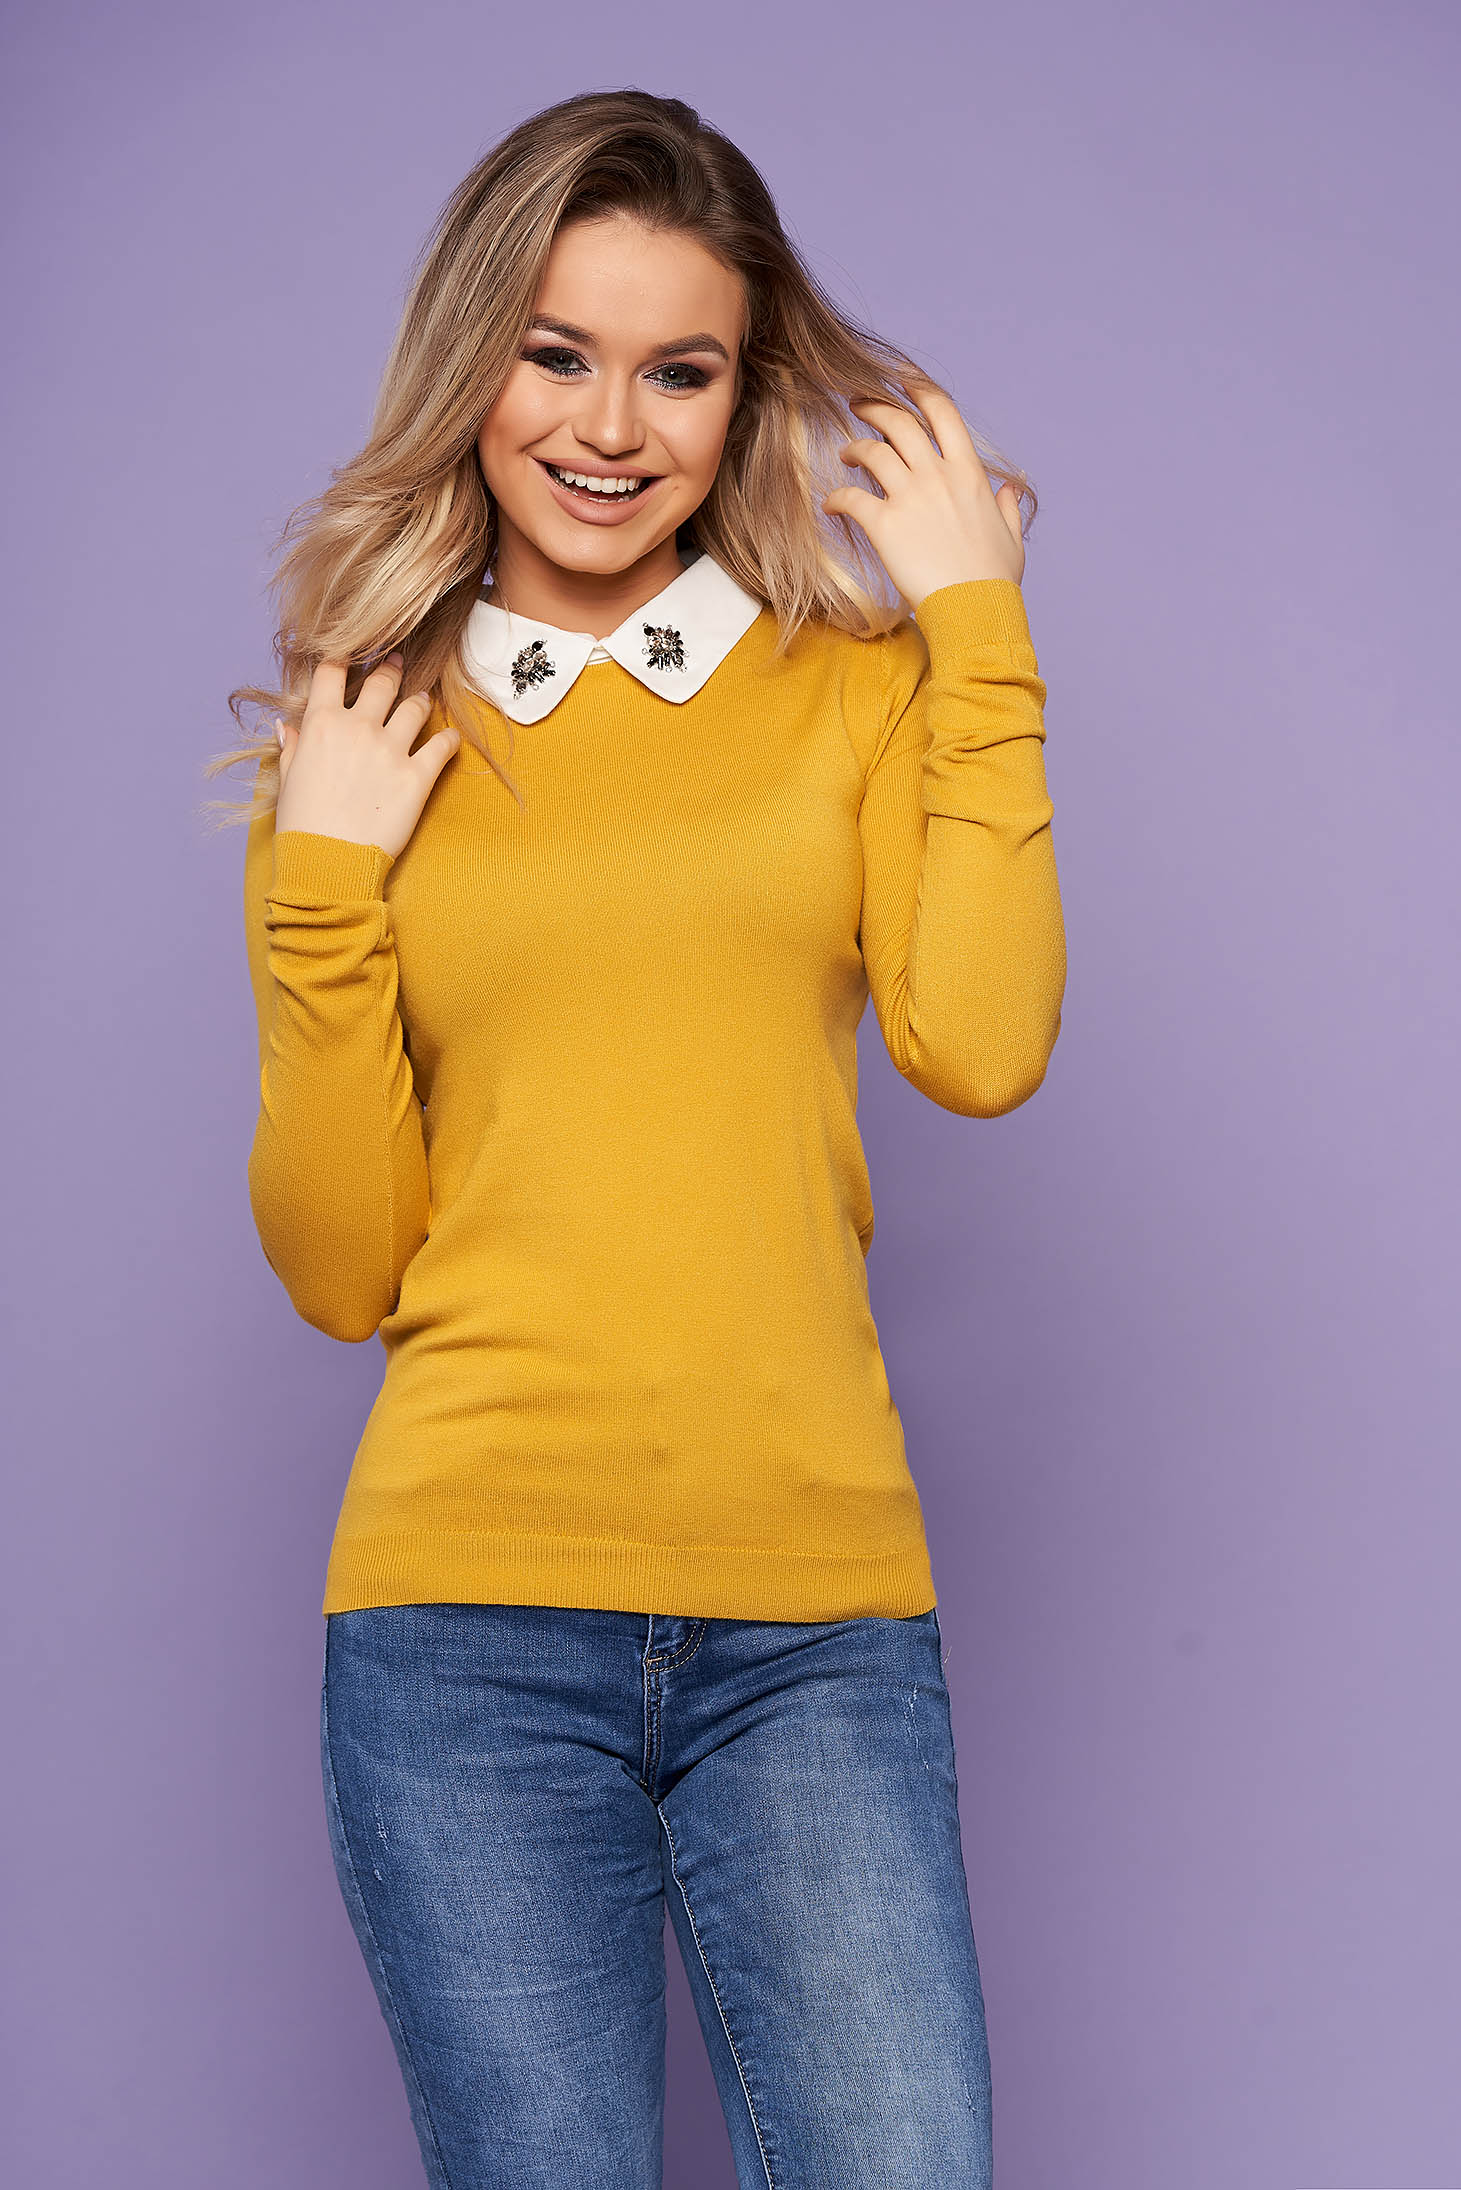 Mustard women`s blouse elegant short cut with collar knitted with crystal embellished details